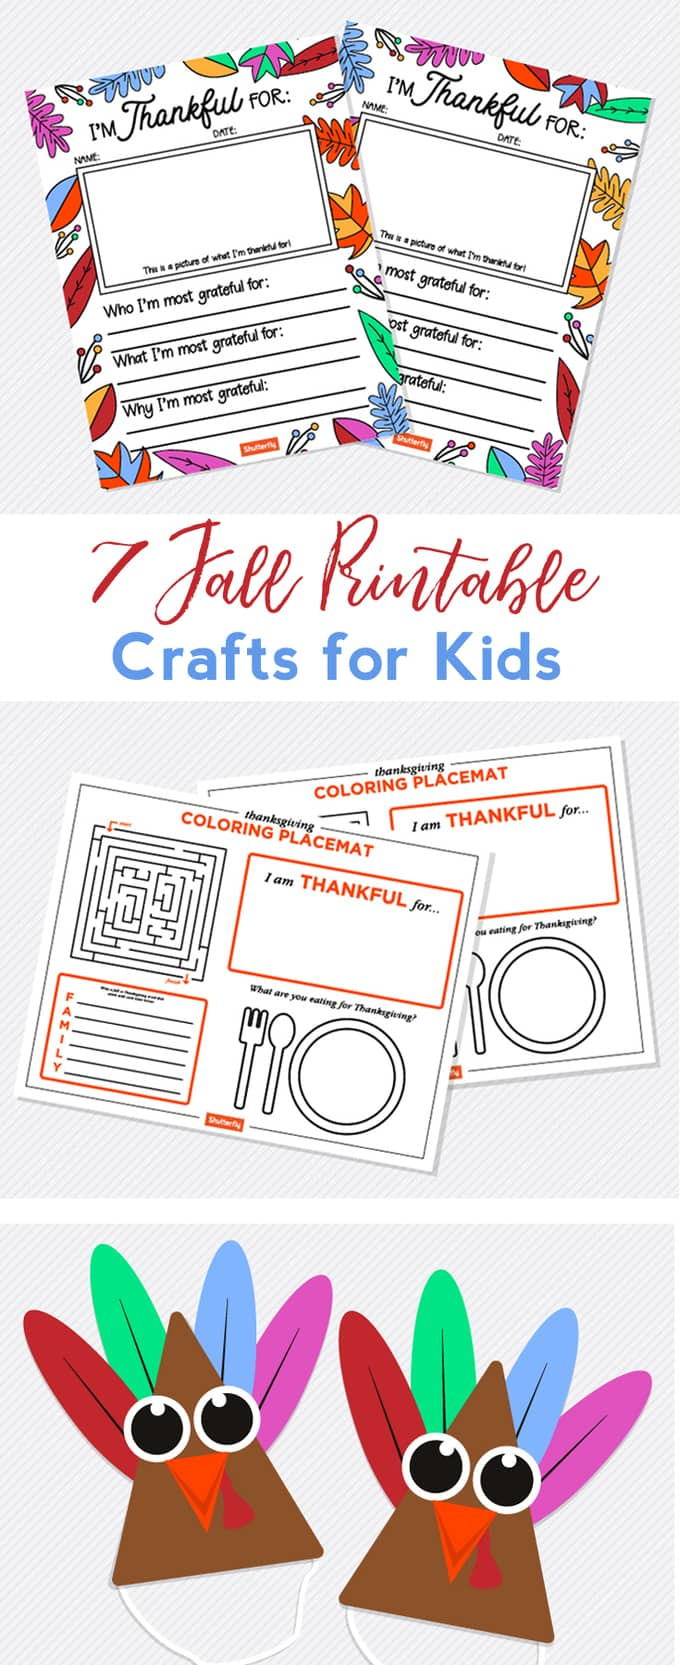 Geeky image regarding printable craft for kids